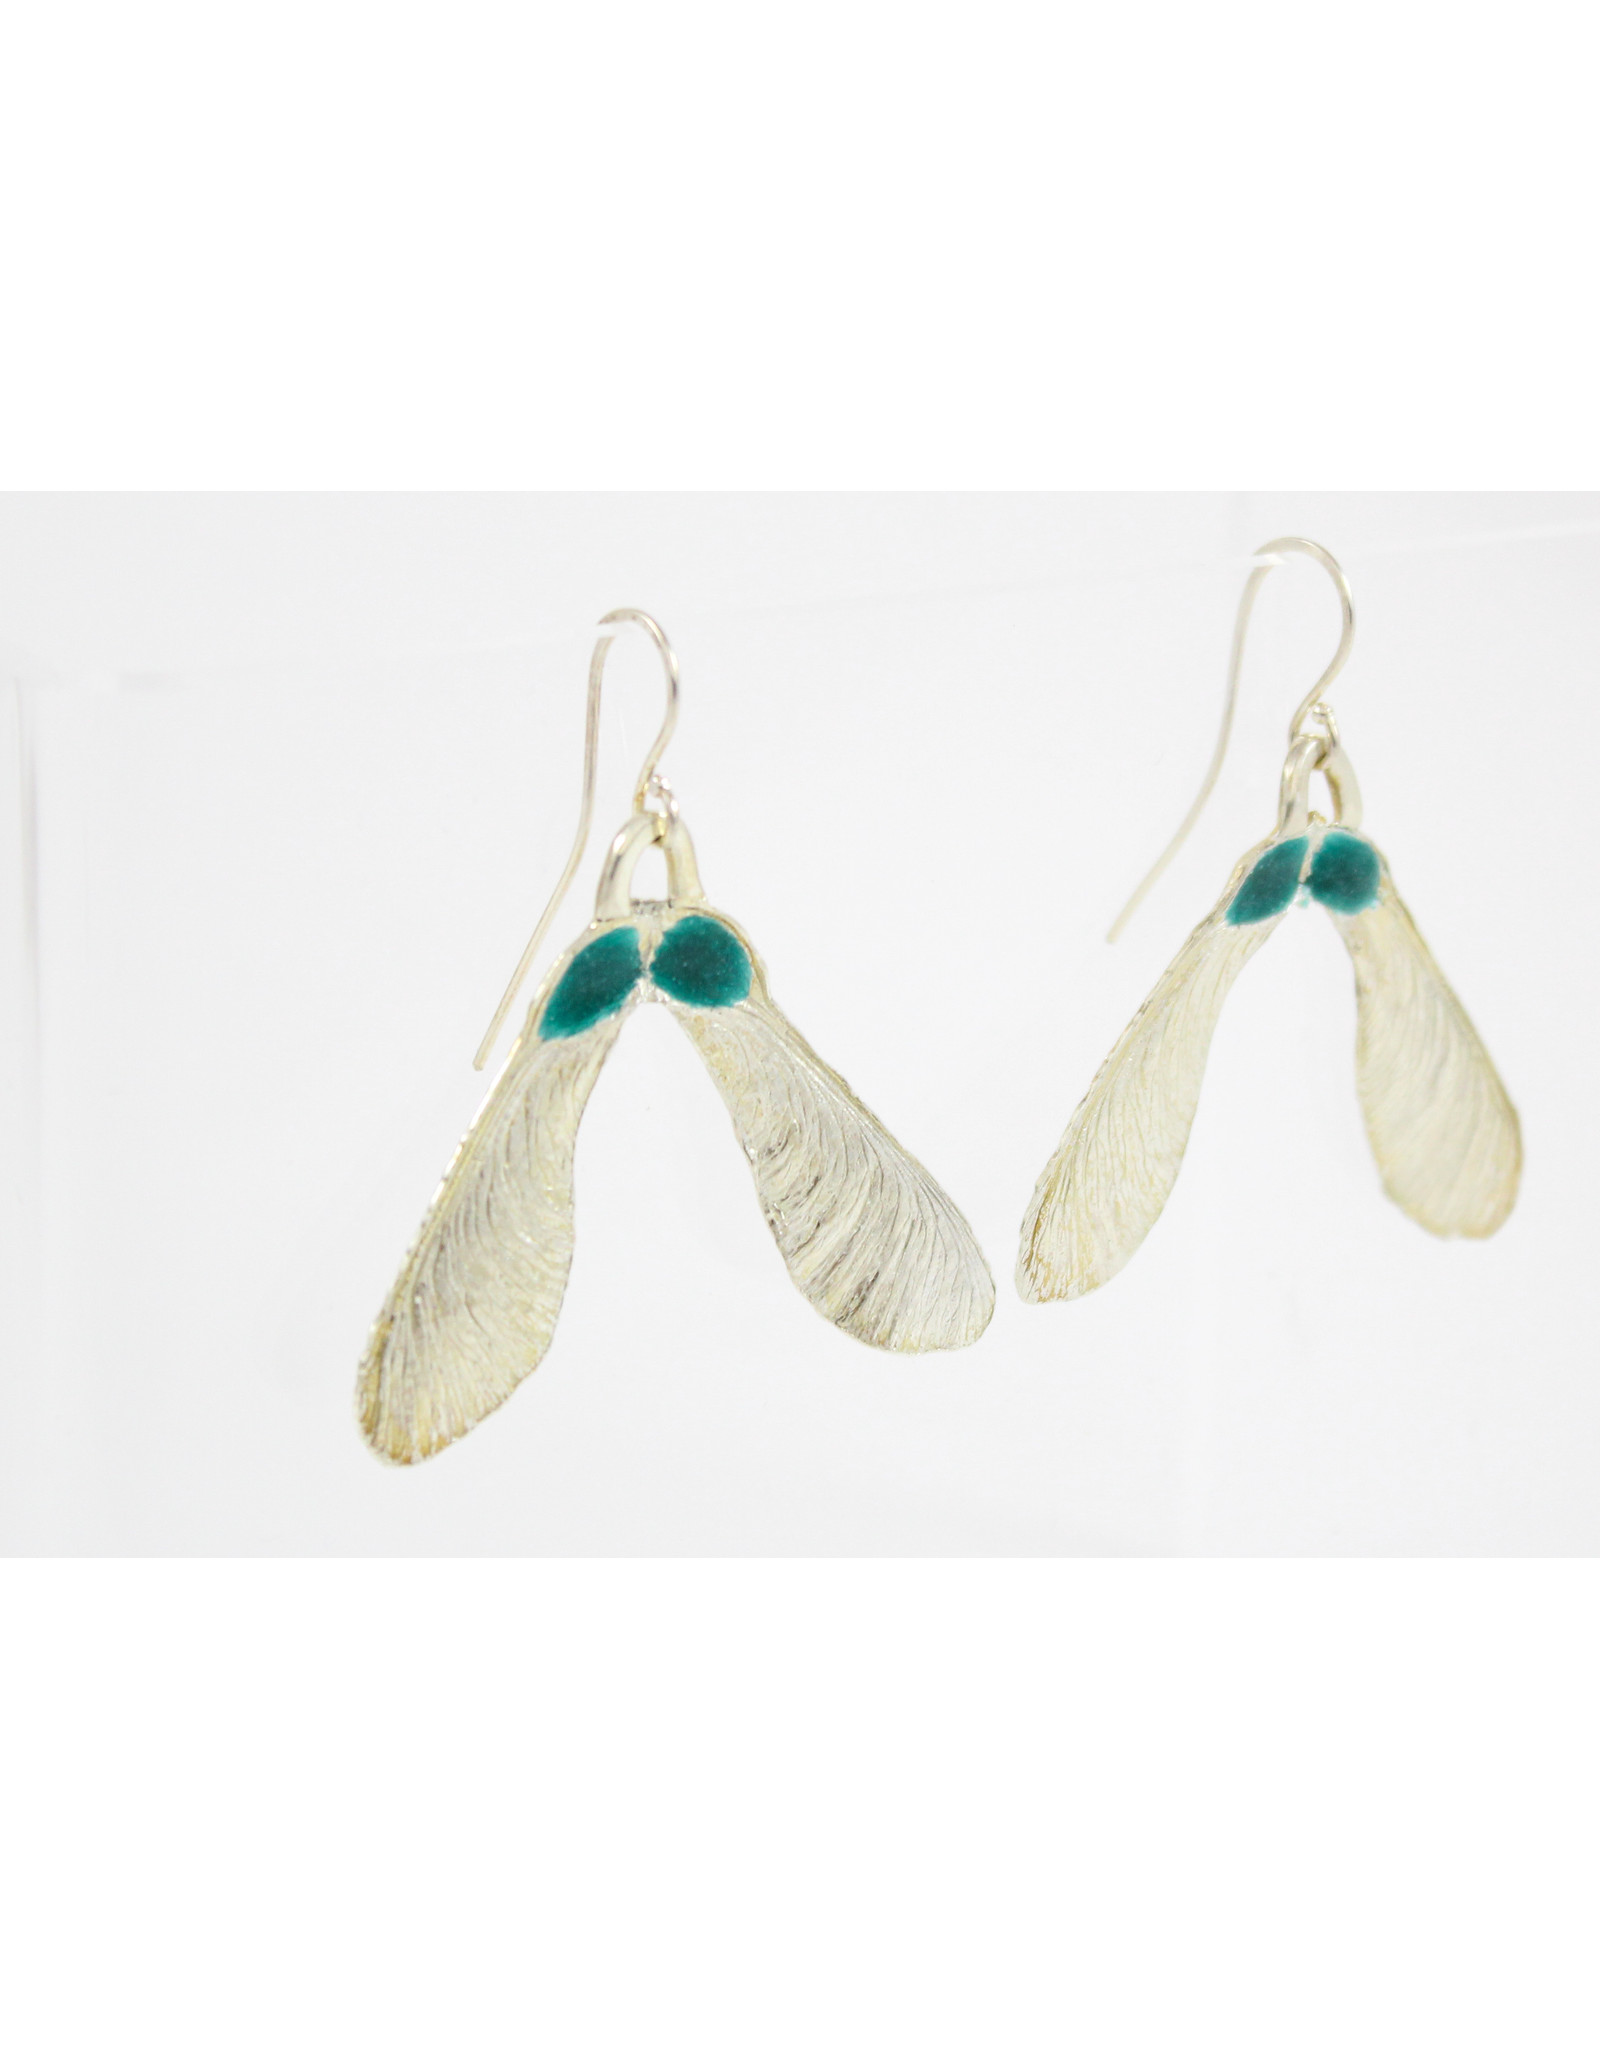 Karen Wawer Maple Seed Earrings by Karen Wawer